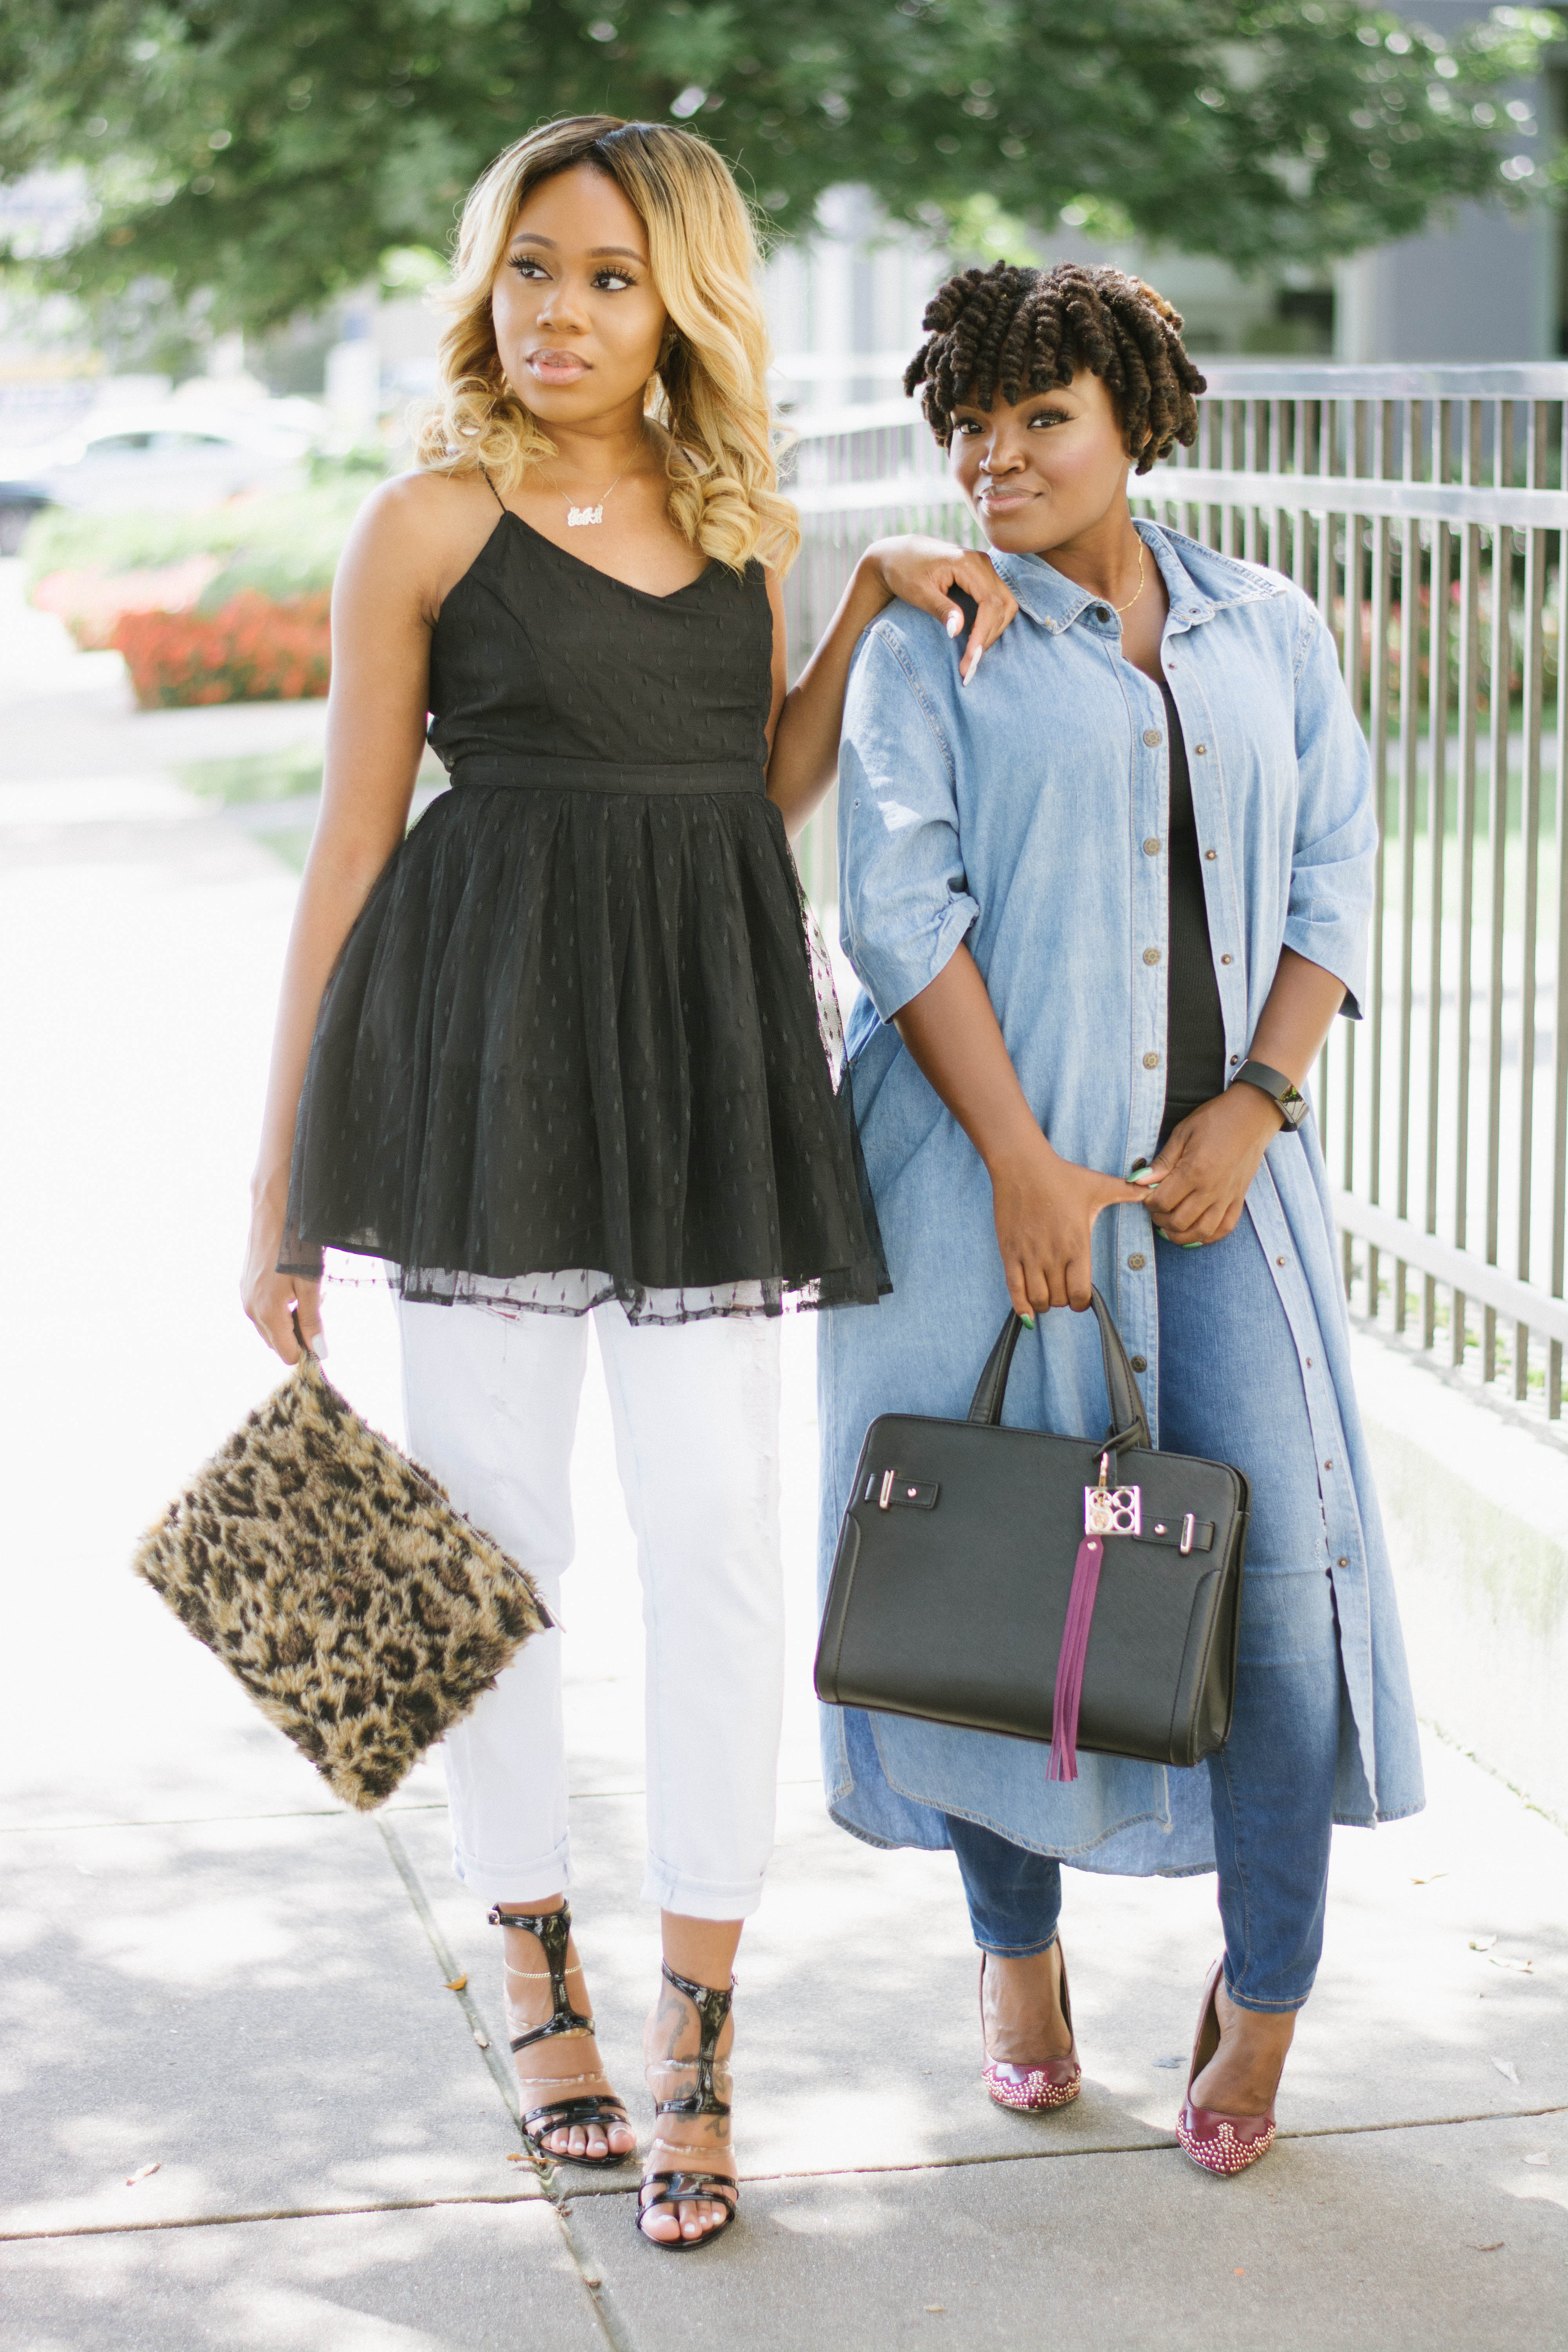 BLOGGER BESTIES: SUMMER FALL TRANSITION WITH JOJO